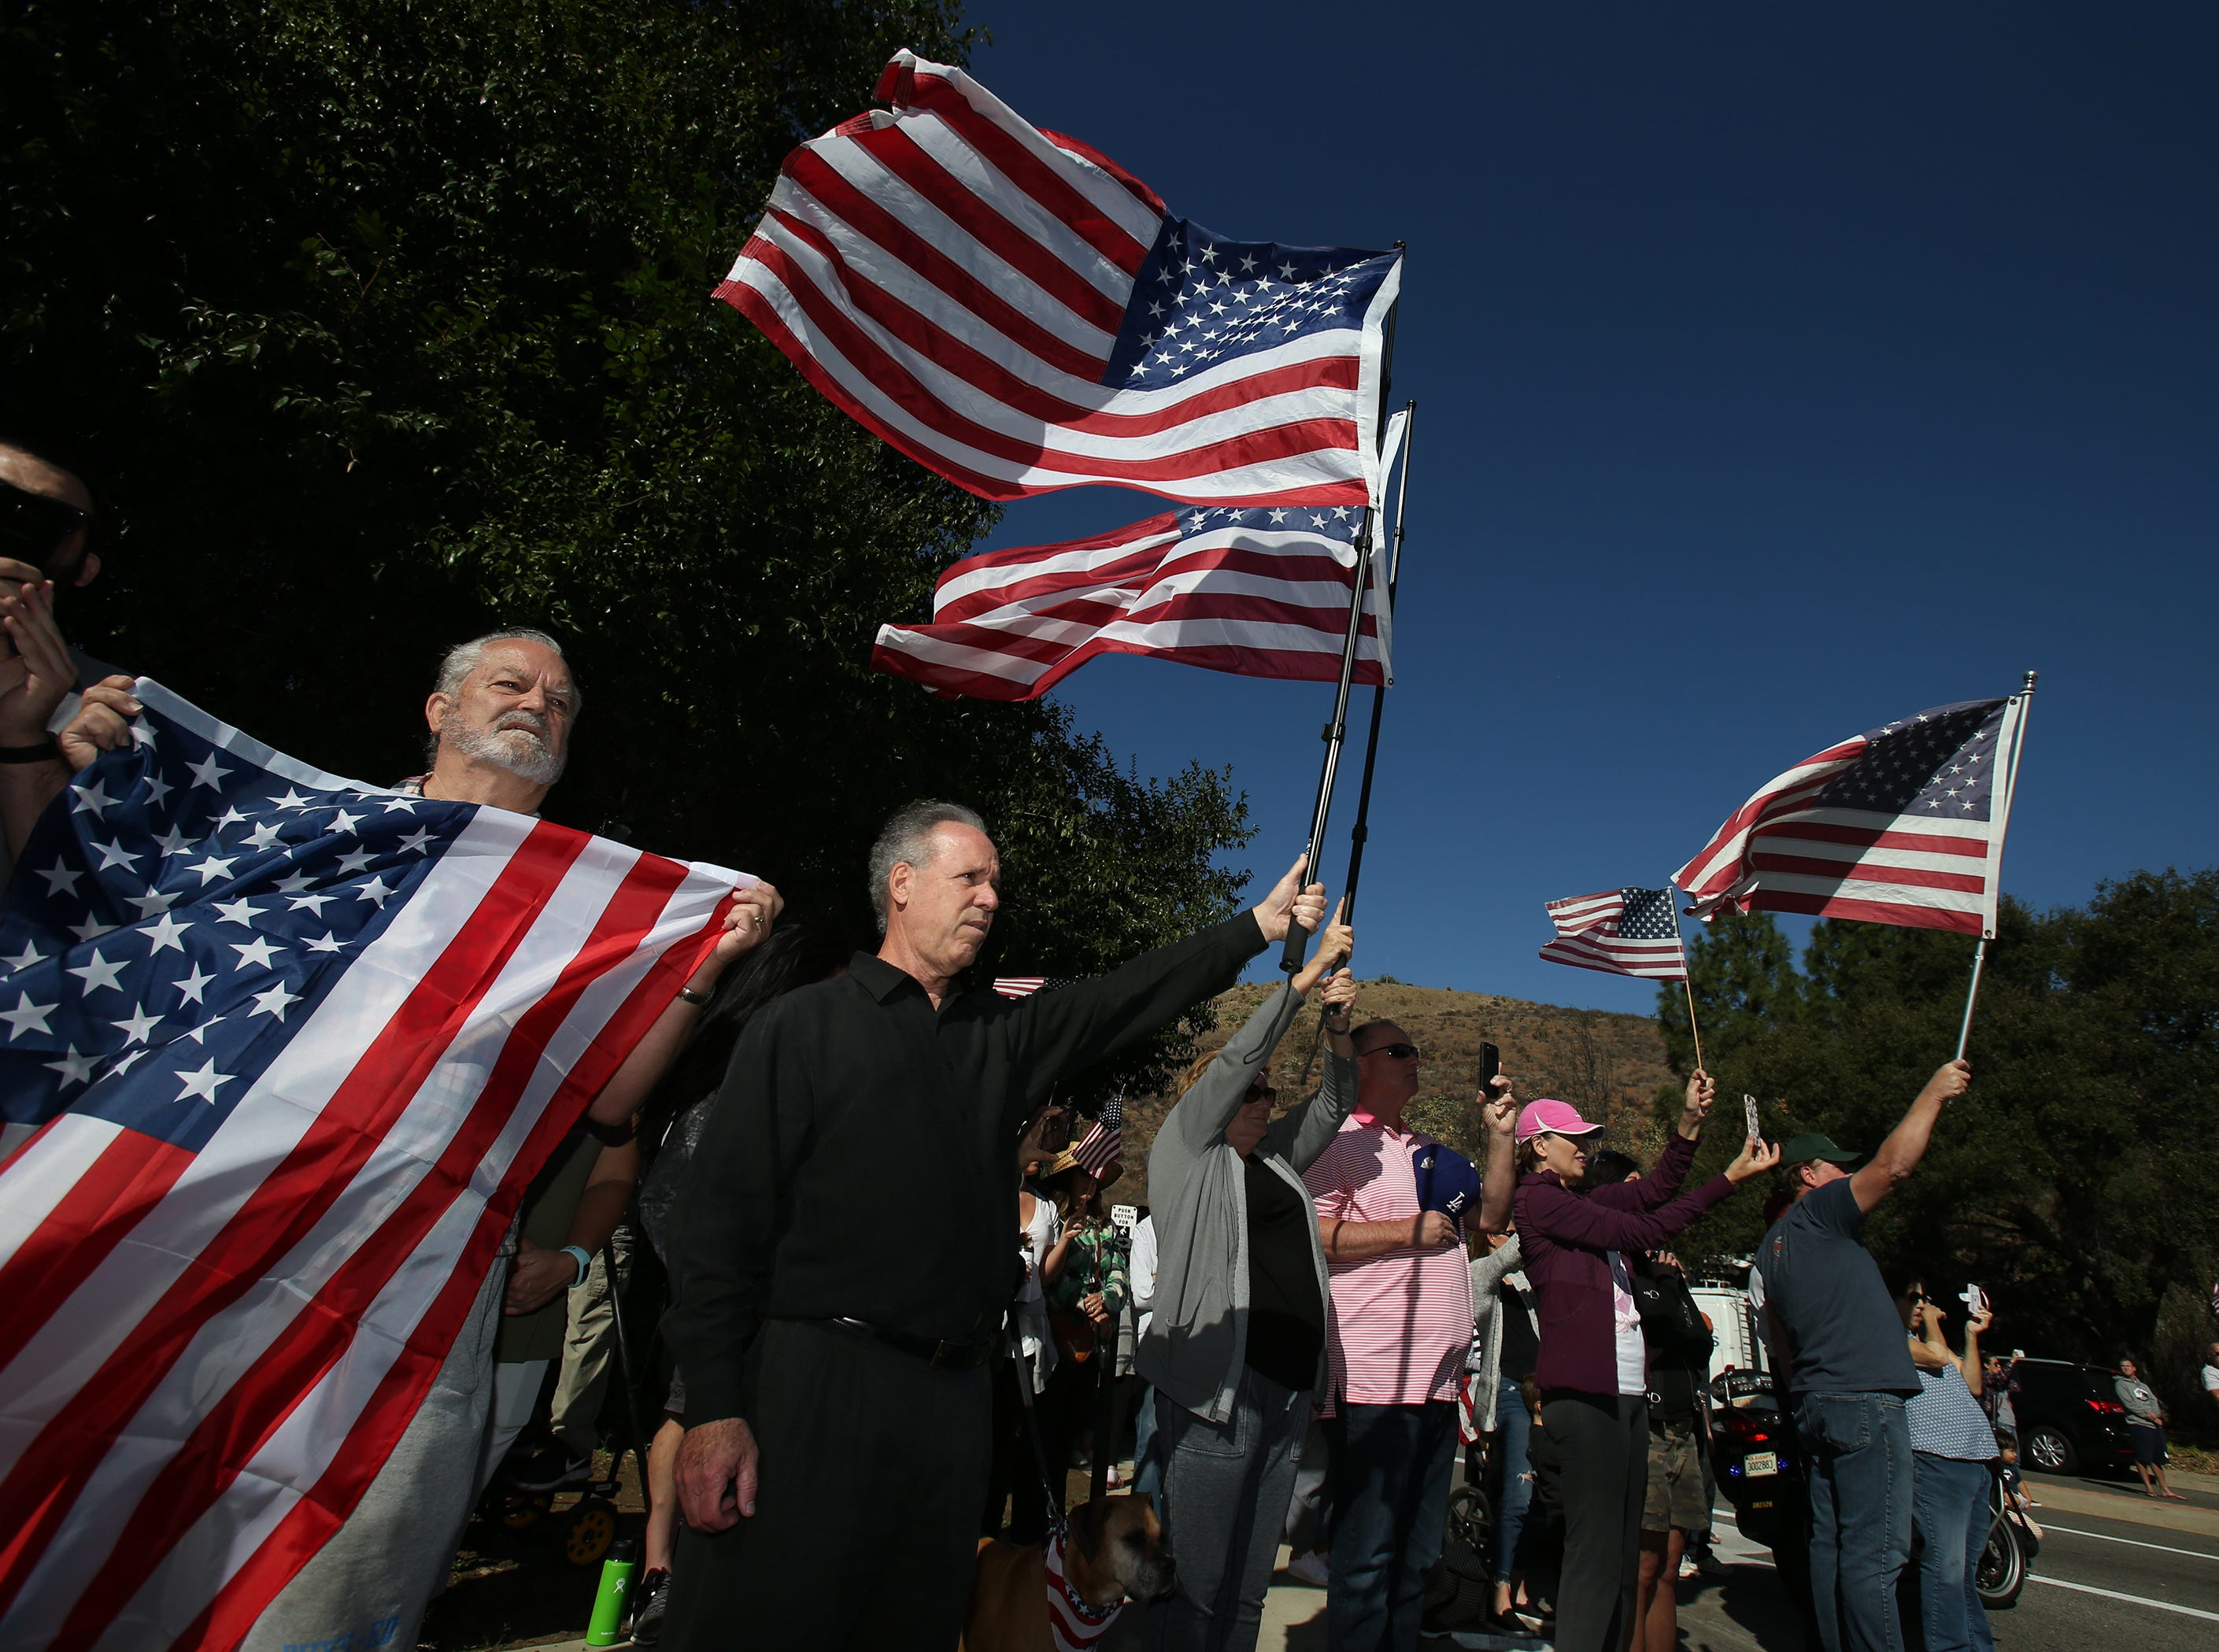 Eric Bosworth (center) waves his American flag as the procession for Ventura County Sheriff Sgt. Ron Helus passes by a gathering at Lynn and Janss Roads in Thousand Oaks on Thursday. Helus was killed inside the Borderline Bar and Grill in Thousand Oaks late Wednesday, when 13 people died including the gunman in a mass shooting.